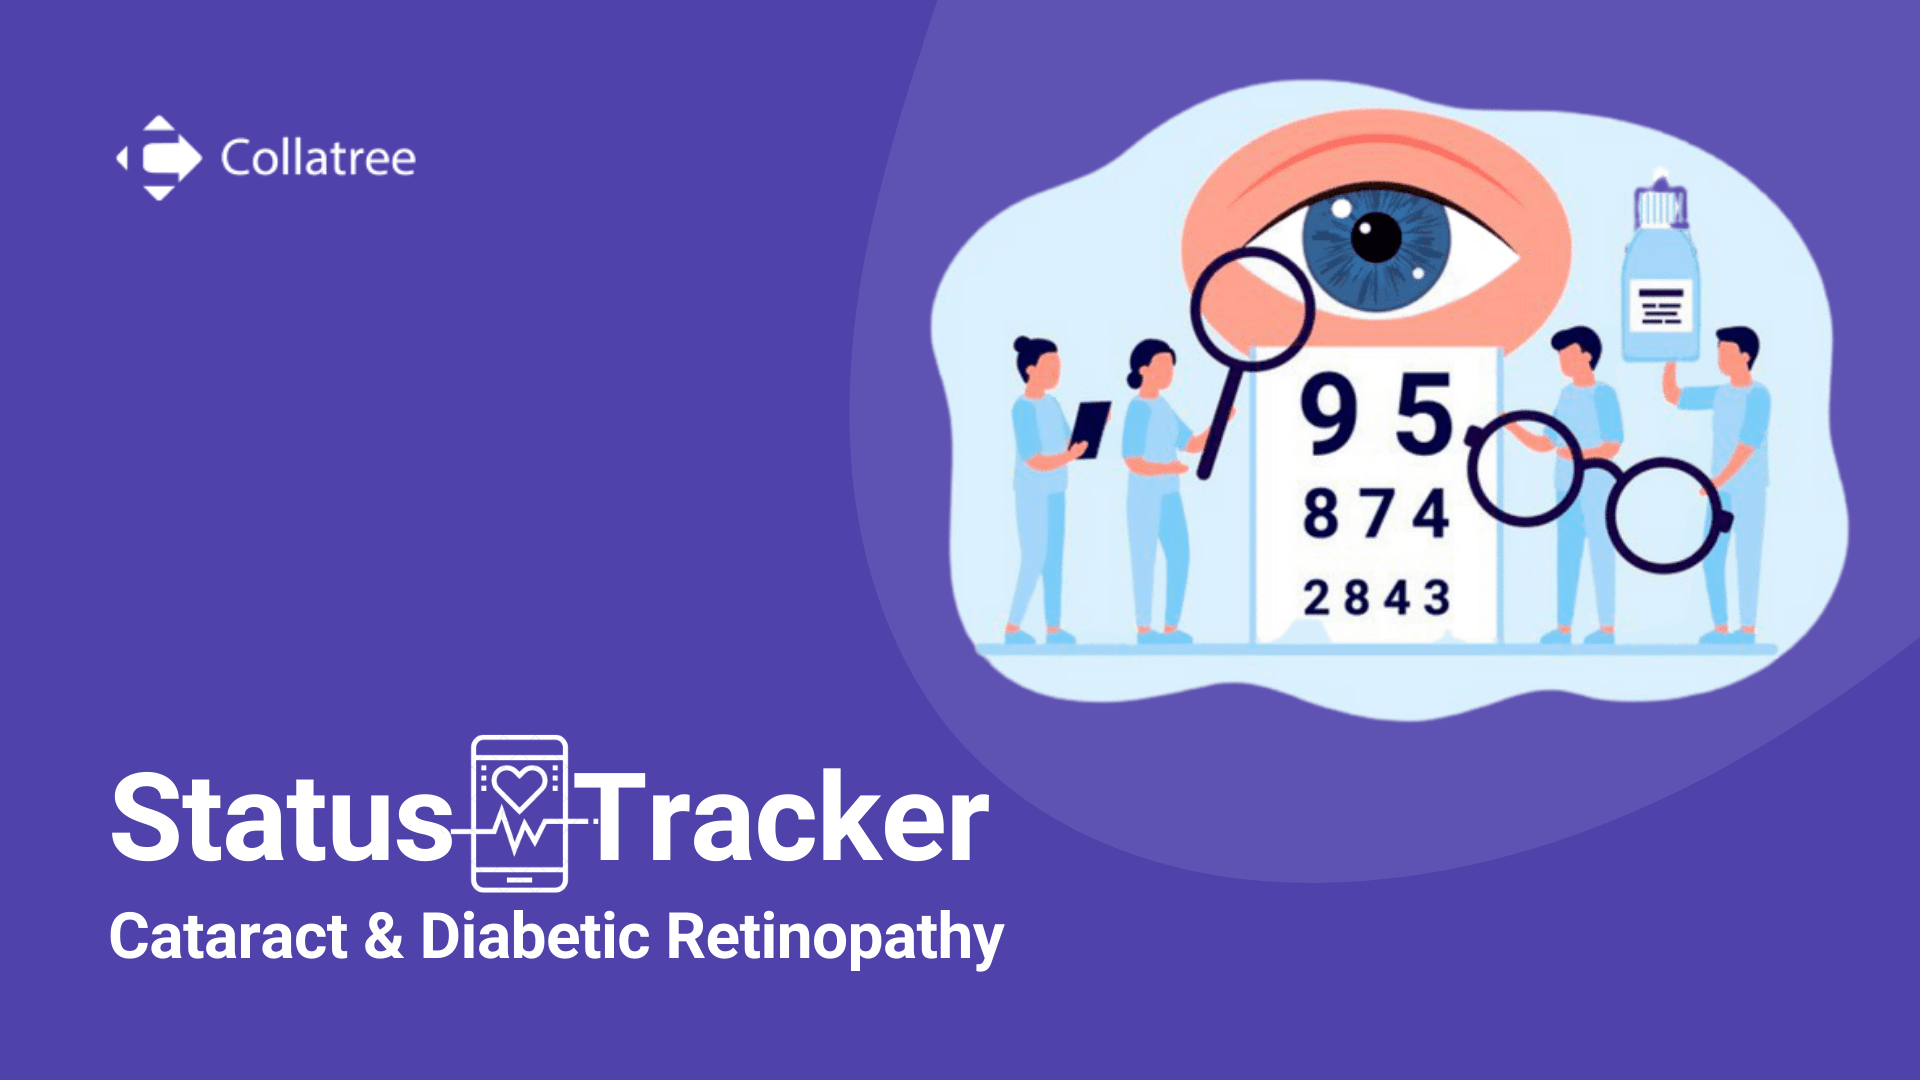 Status Tracker for Cataract and Diabetic Retinopathy